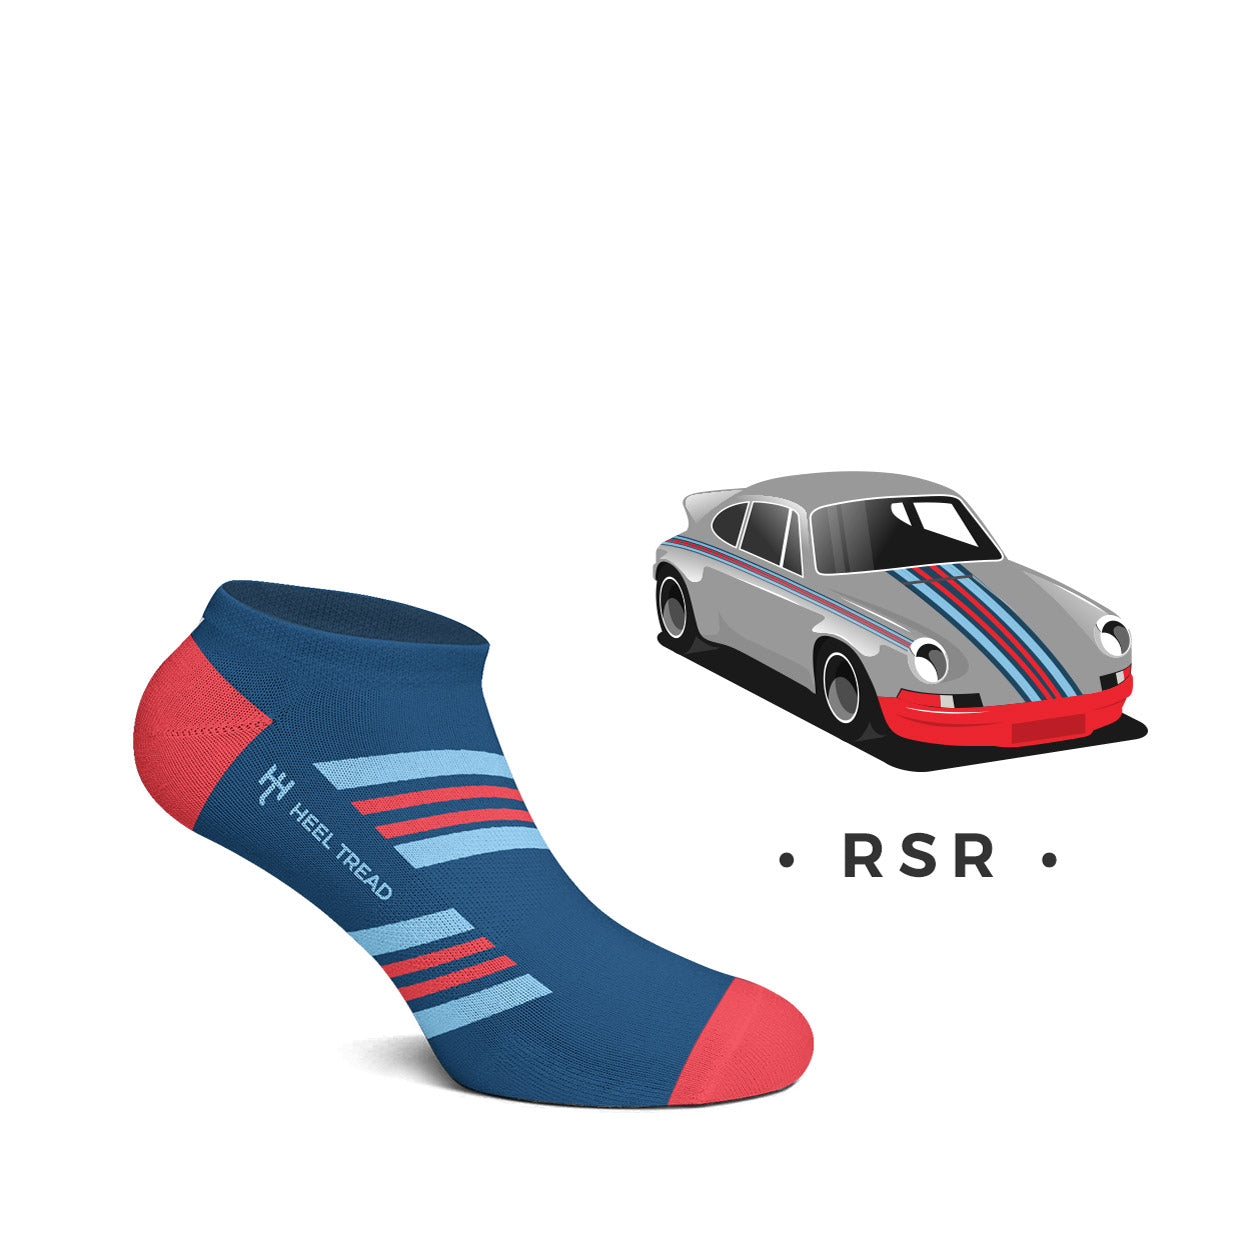 RSR Low Socks